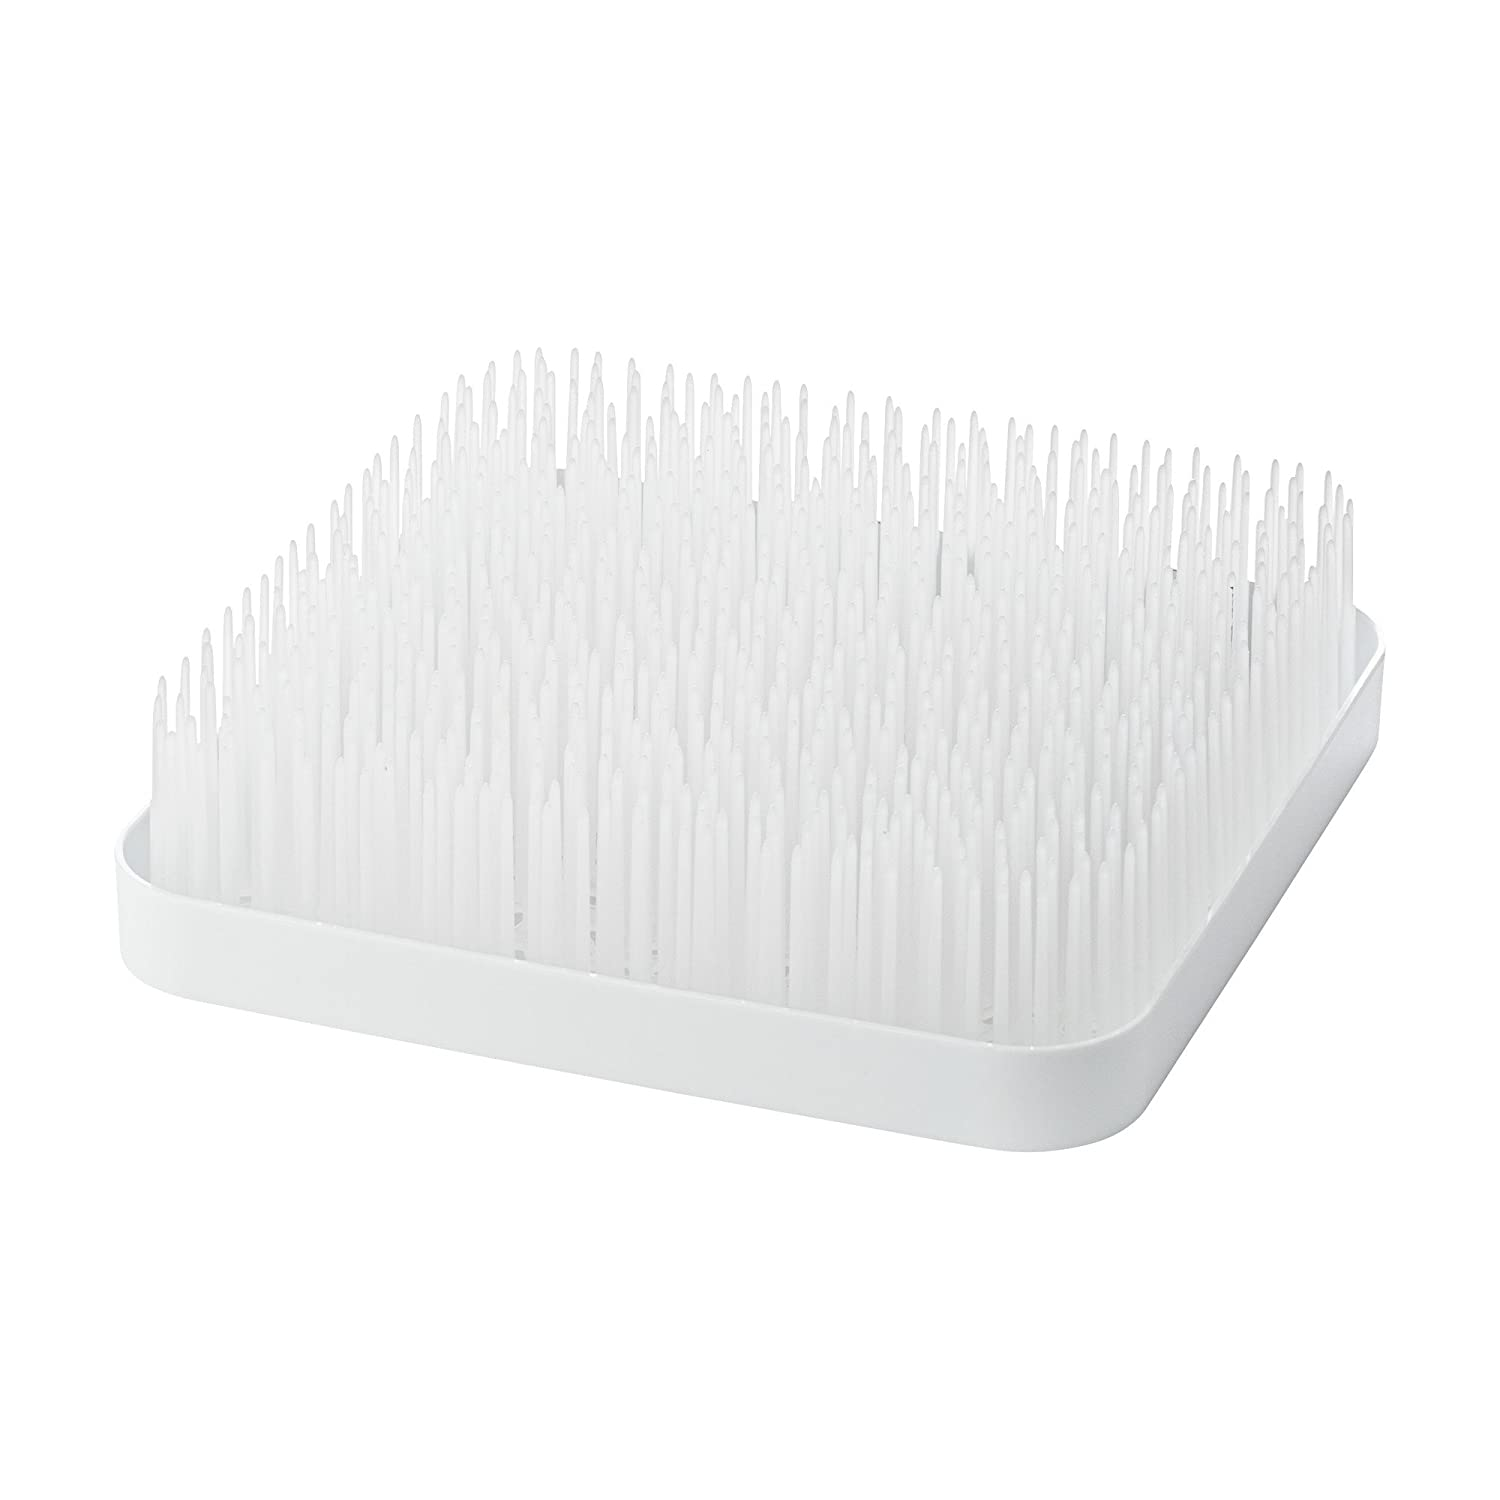 Boon Grass Drying Rack White B376MP1 Bottle Drying